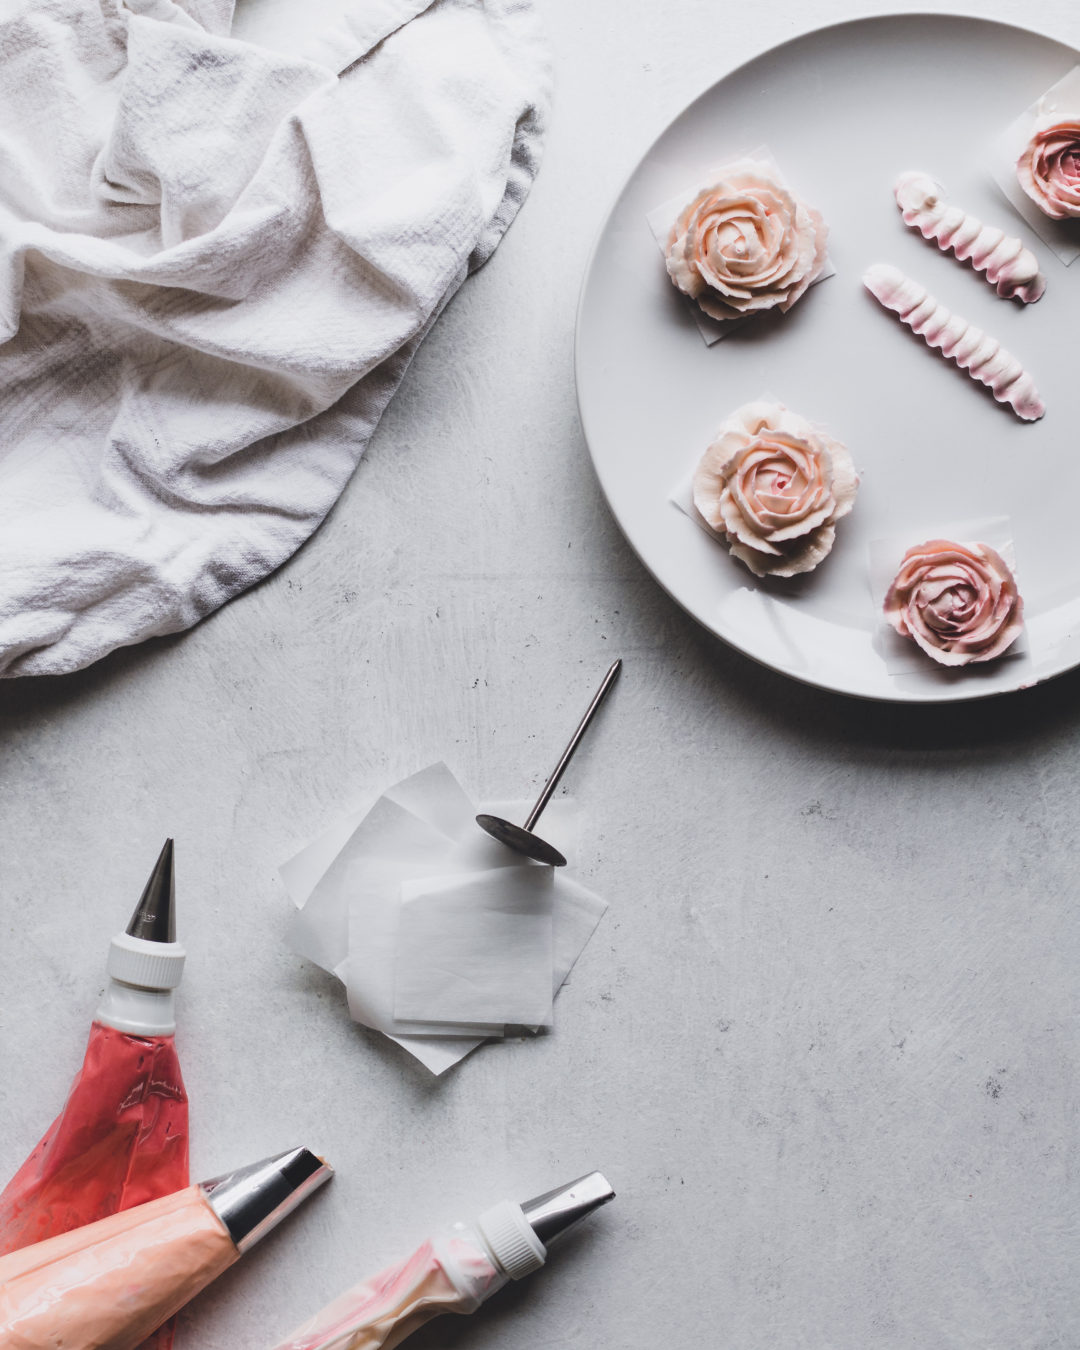 How to Make Realistic Buttercream Flowers | Baking ...